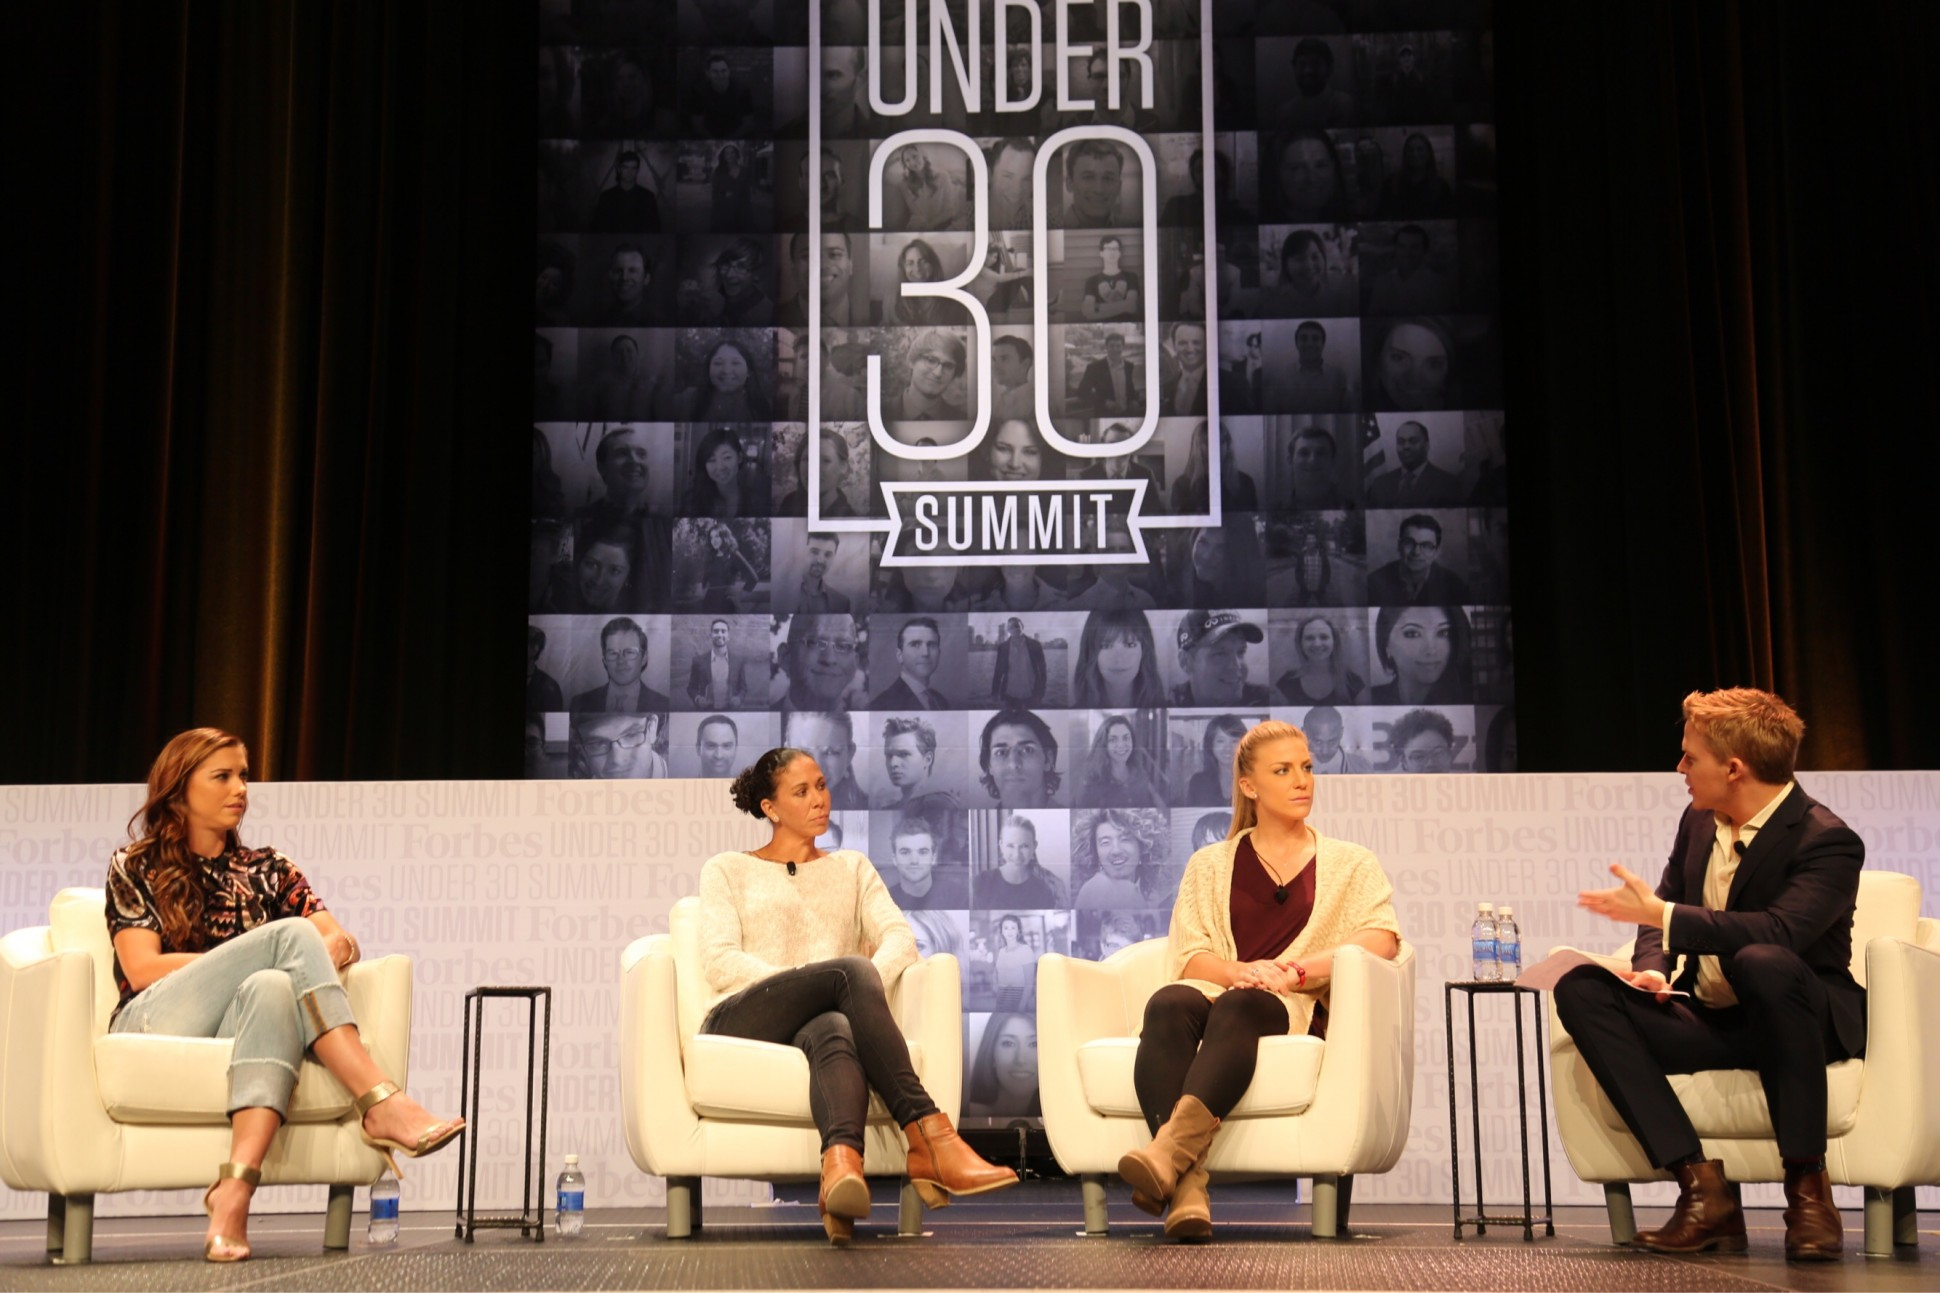 Speakers on stage at Forbes Under 30 Summit